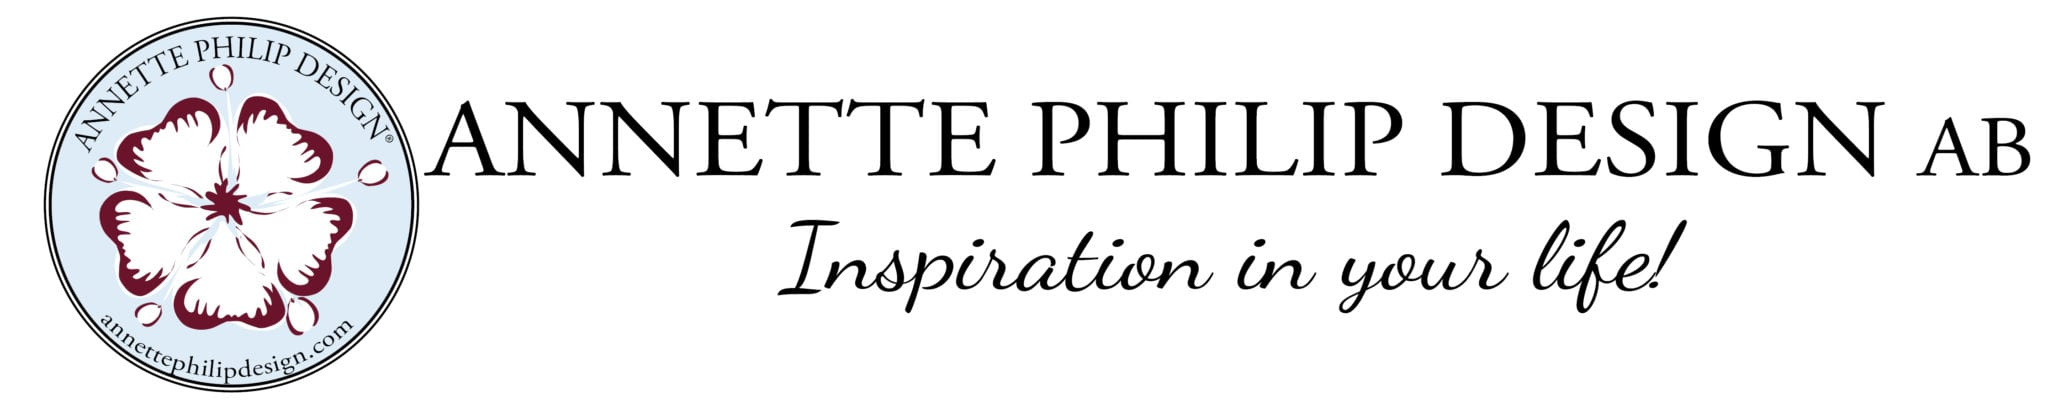 ANNETTE PHILIP DESIGN